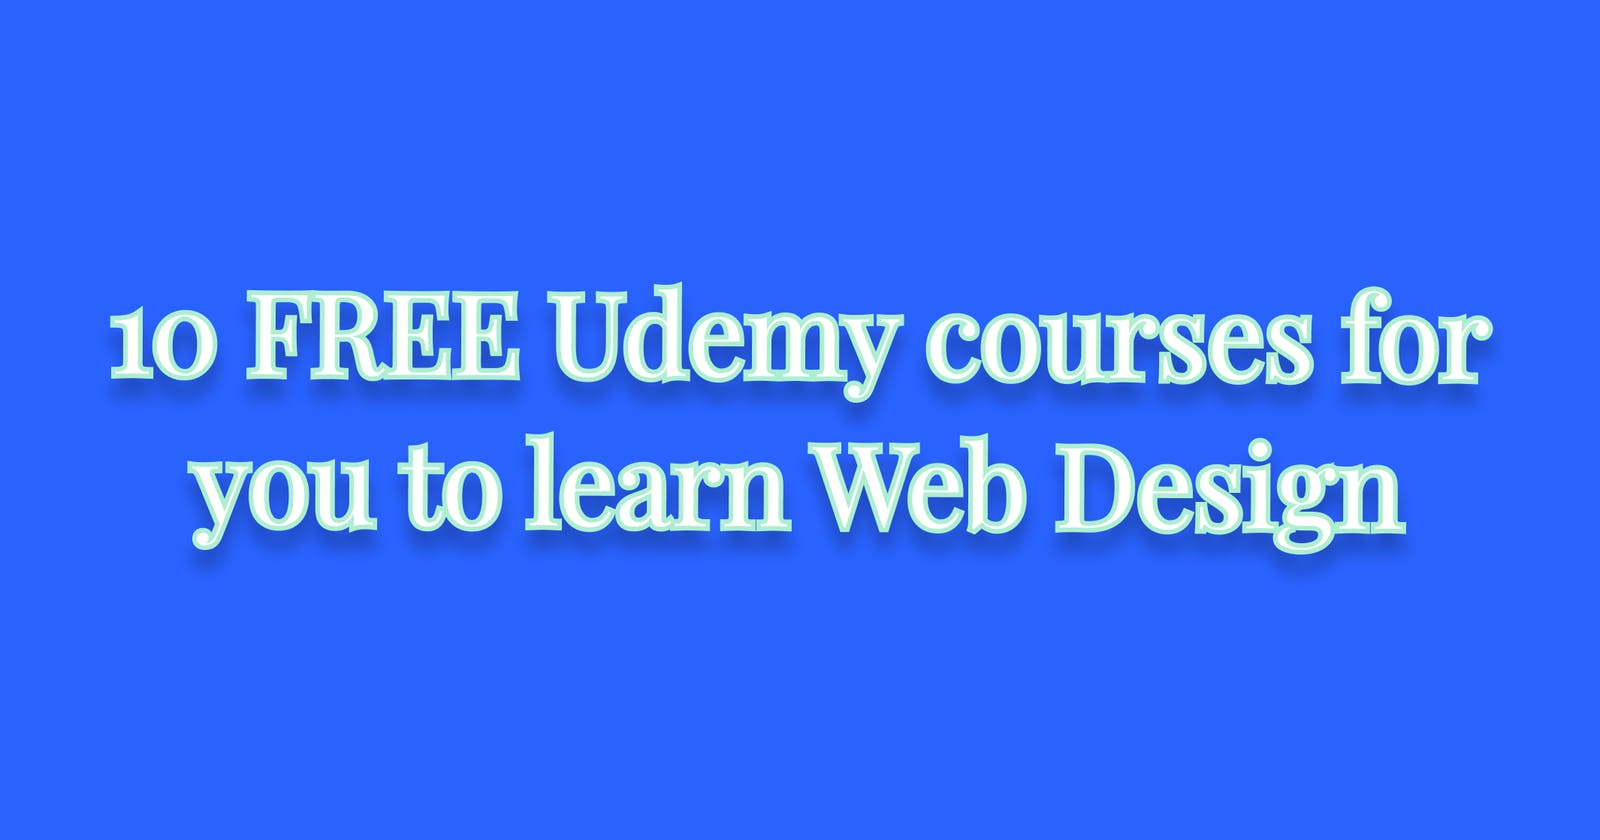 10 FREE Udemy courses for you to learn Web Design